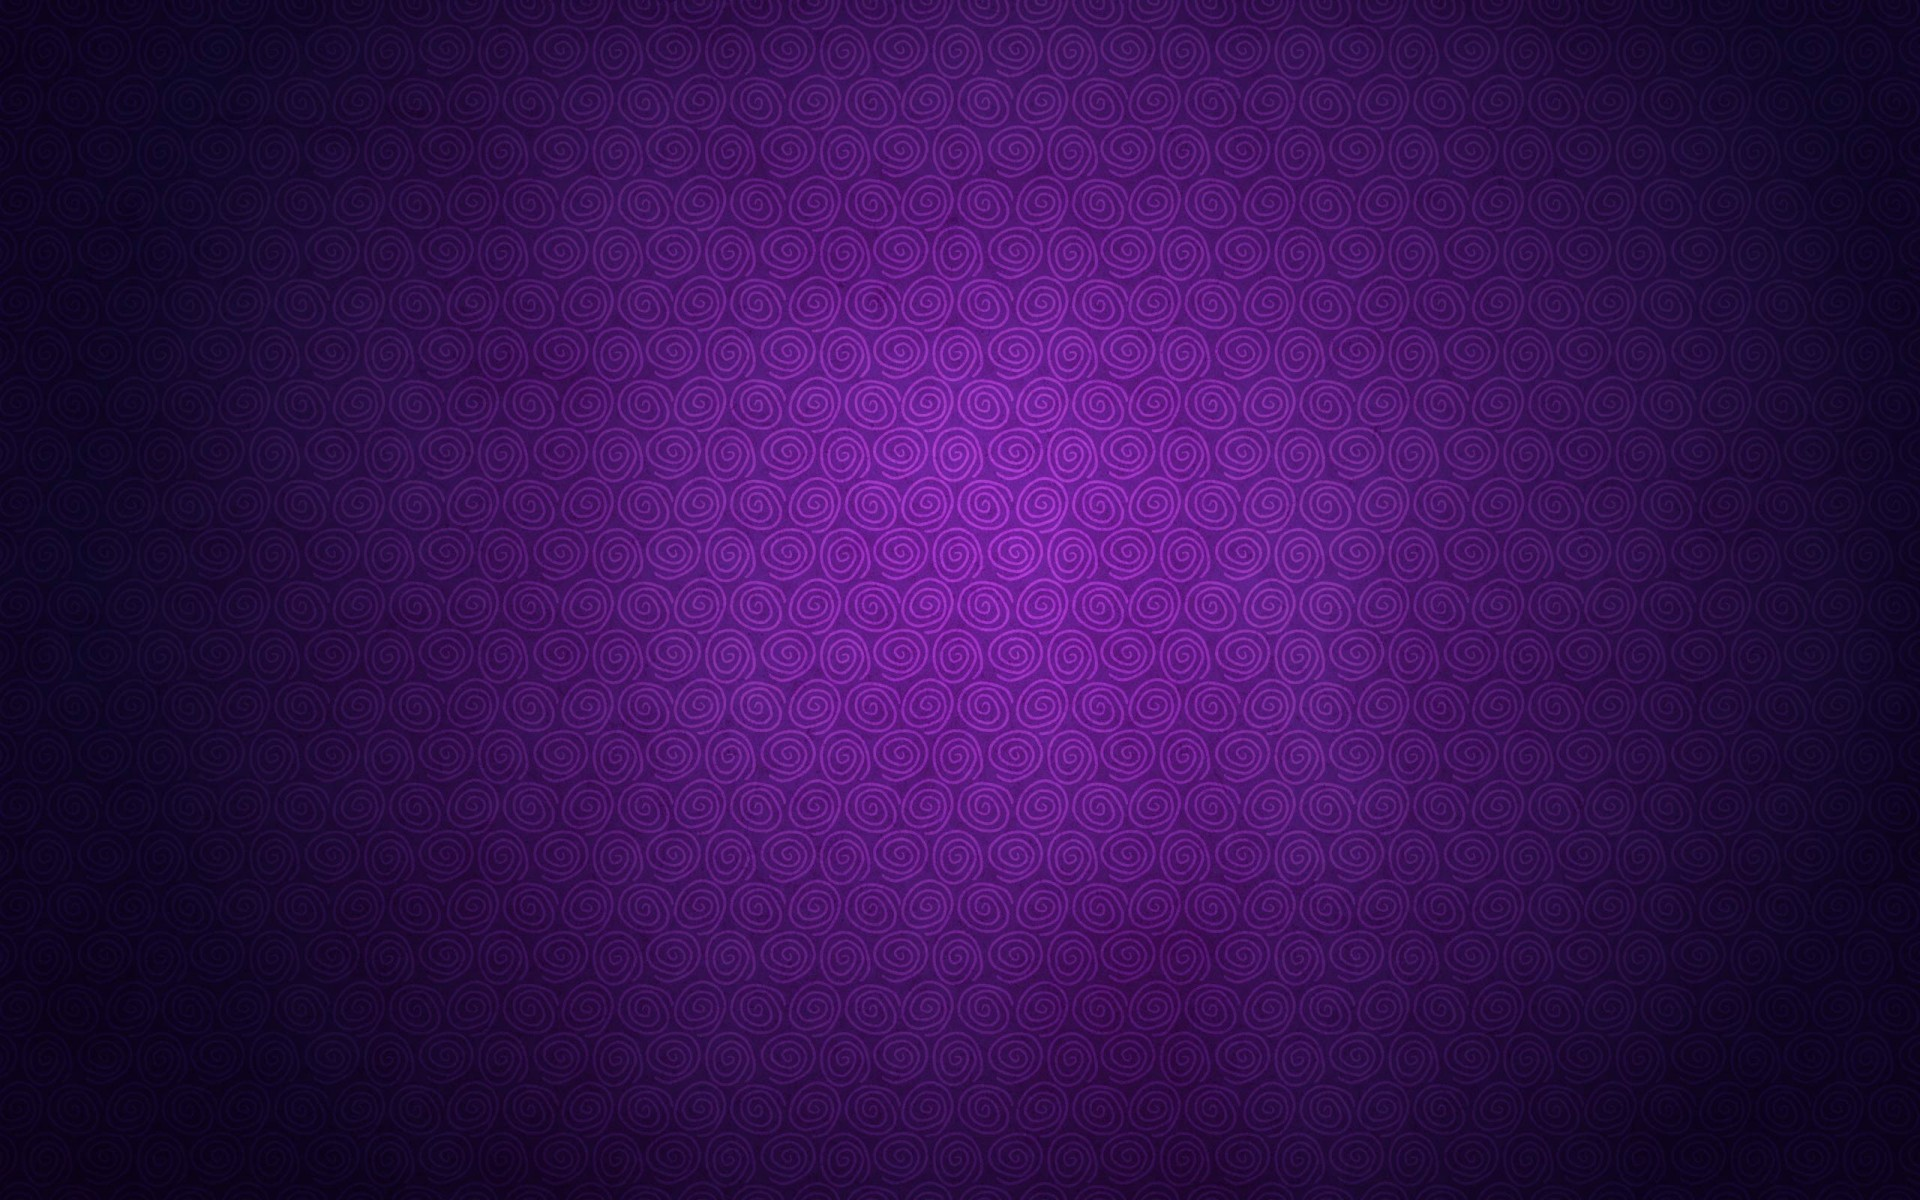 purple backgrounds 18520